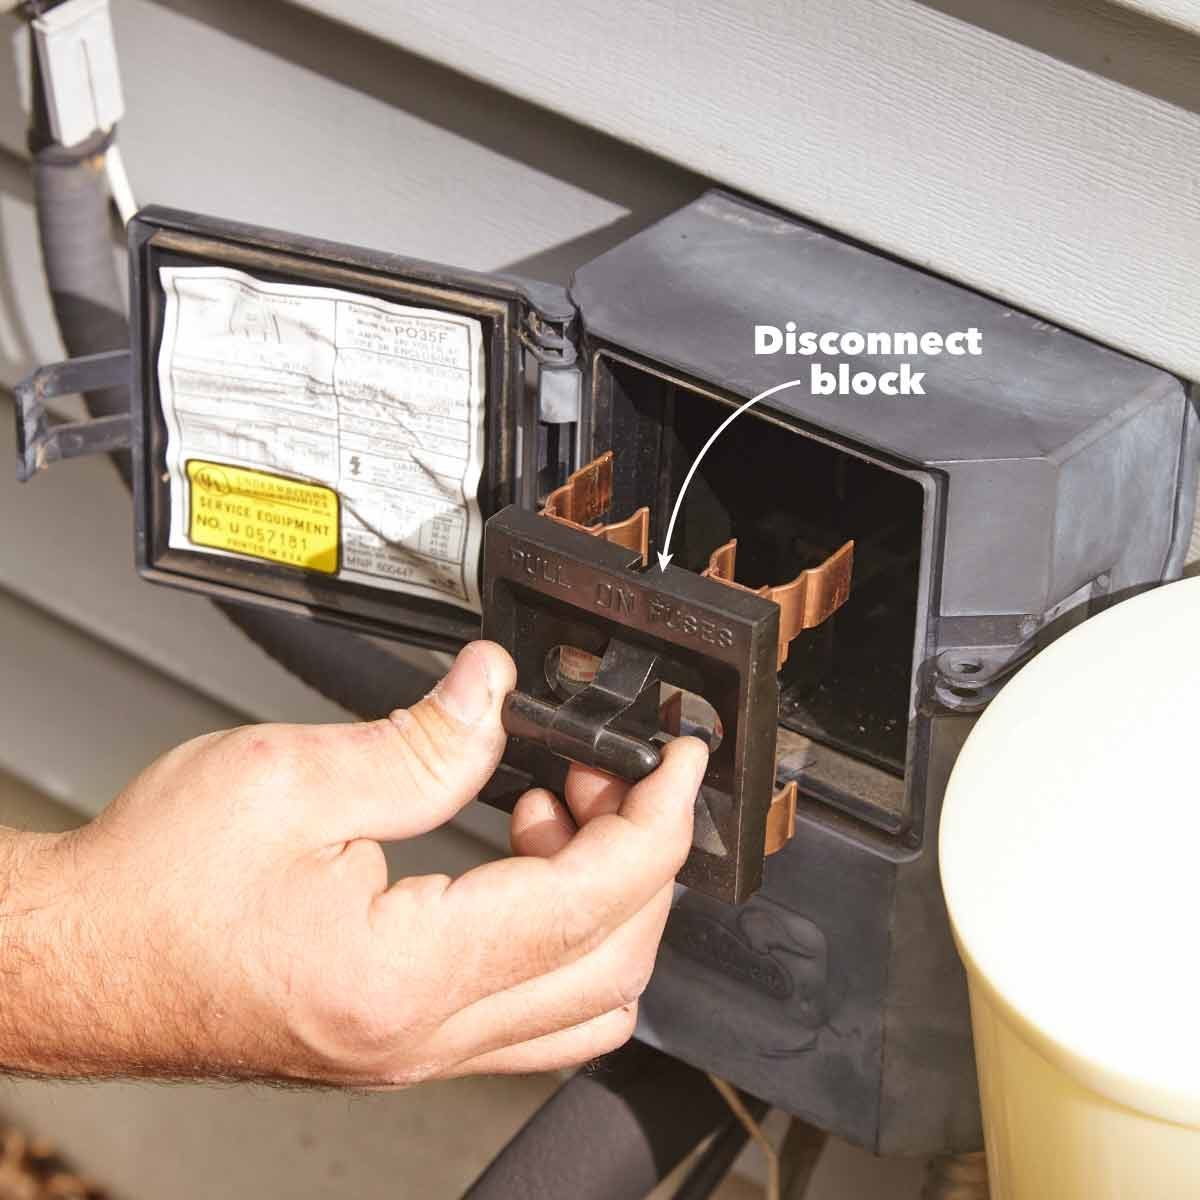 AC Repair: How to Troubleshoot and Fix an Air Conditioner (DIY Project)The Family Handyman